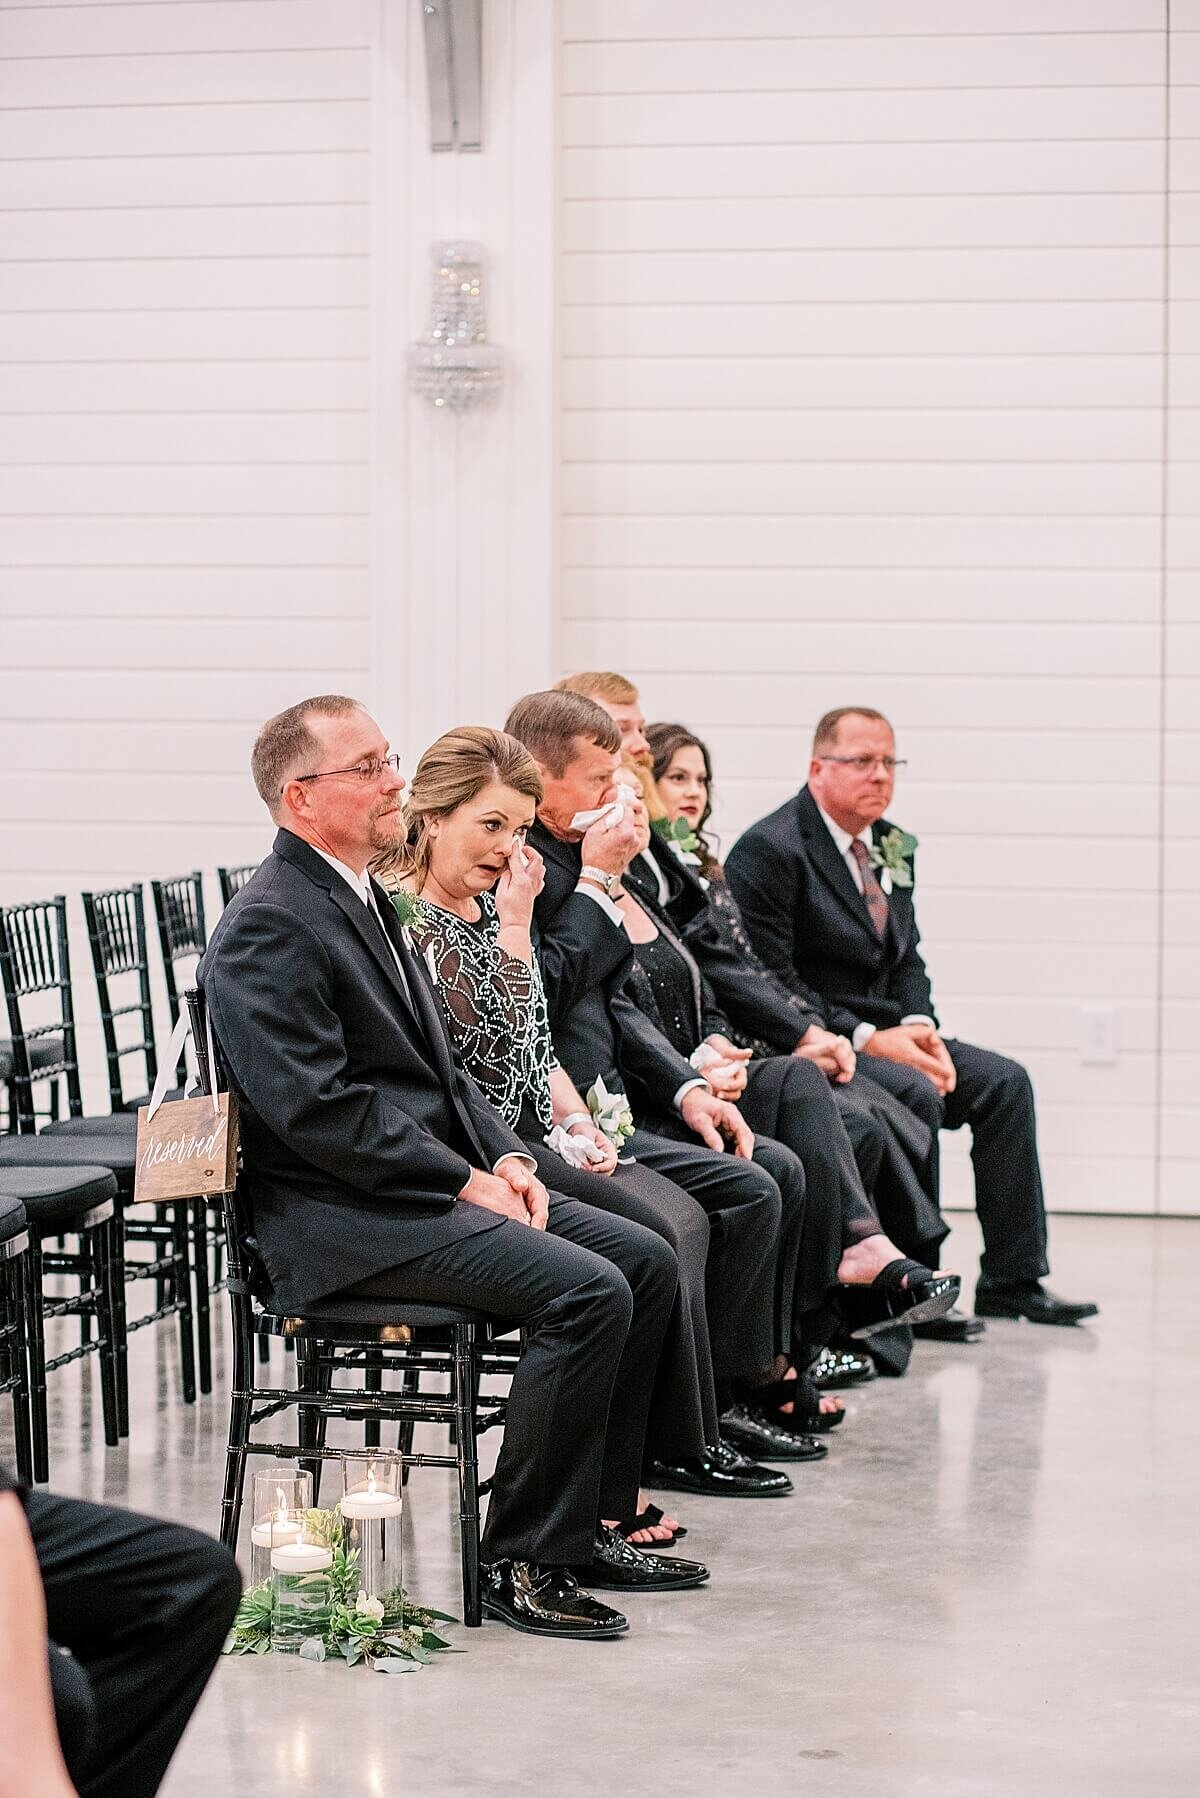 Ceremony in the Chapel at The Annex photographed by Alicia Yarrish Photography